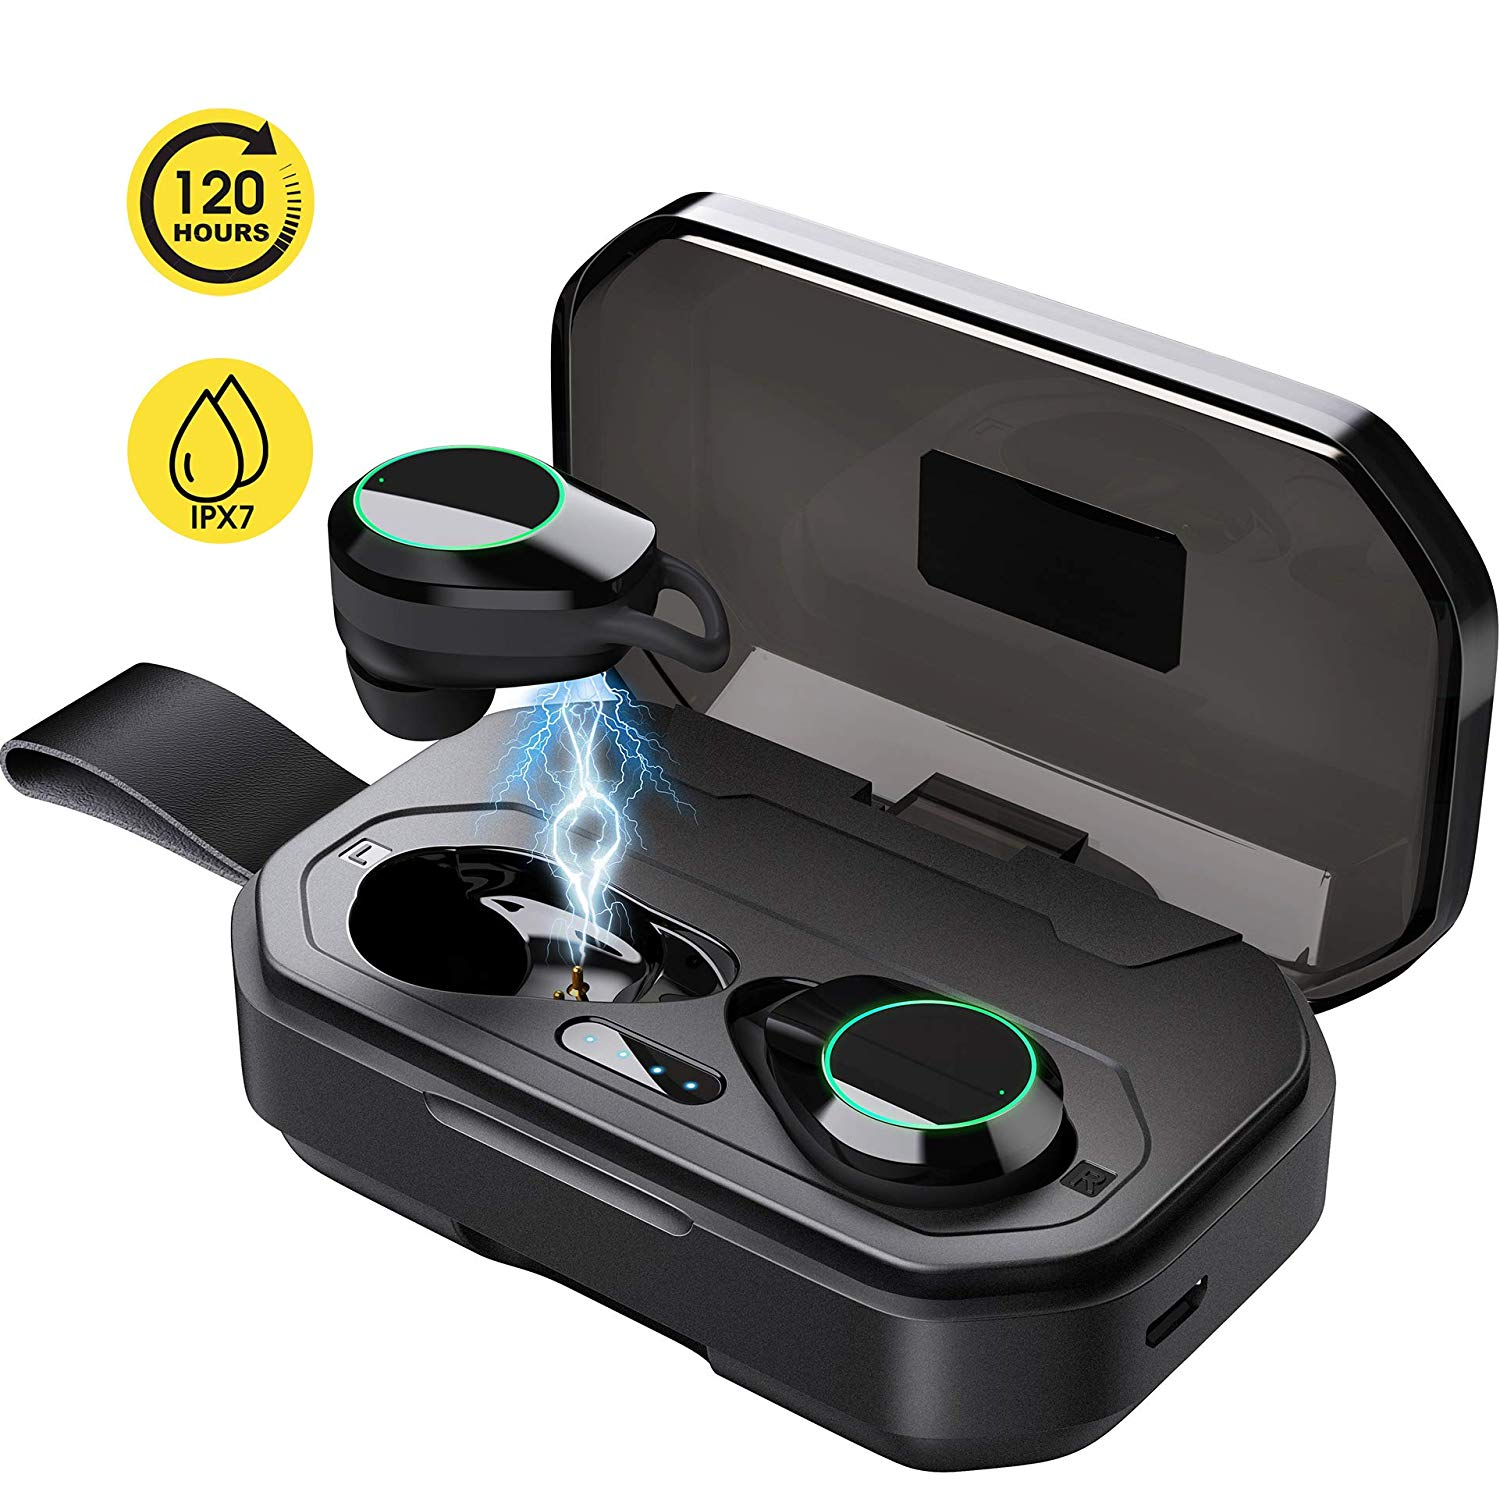 Updated 2019 Version Wireless Headphones, Bluetooth 5.0 True Wireless Earbuds IPX7 Waterproof Built-in Mic Headset